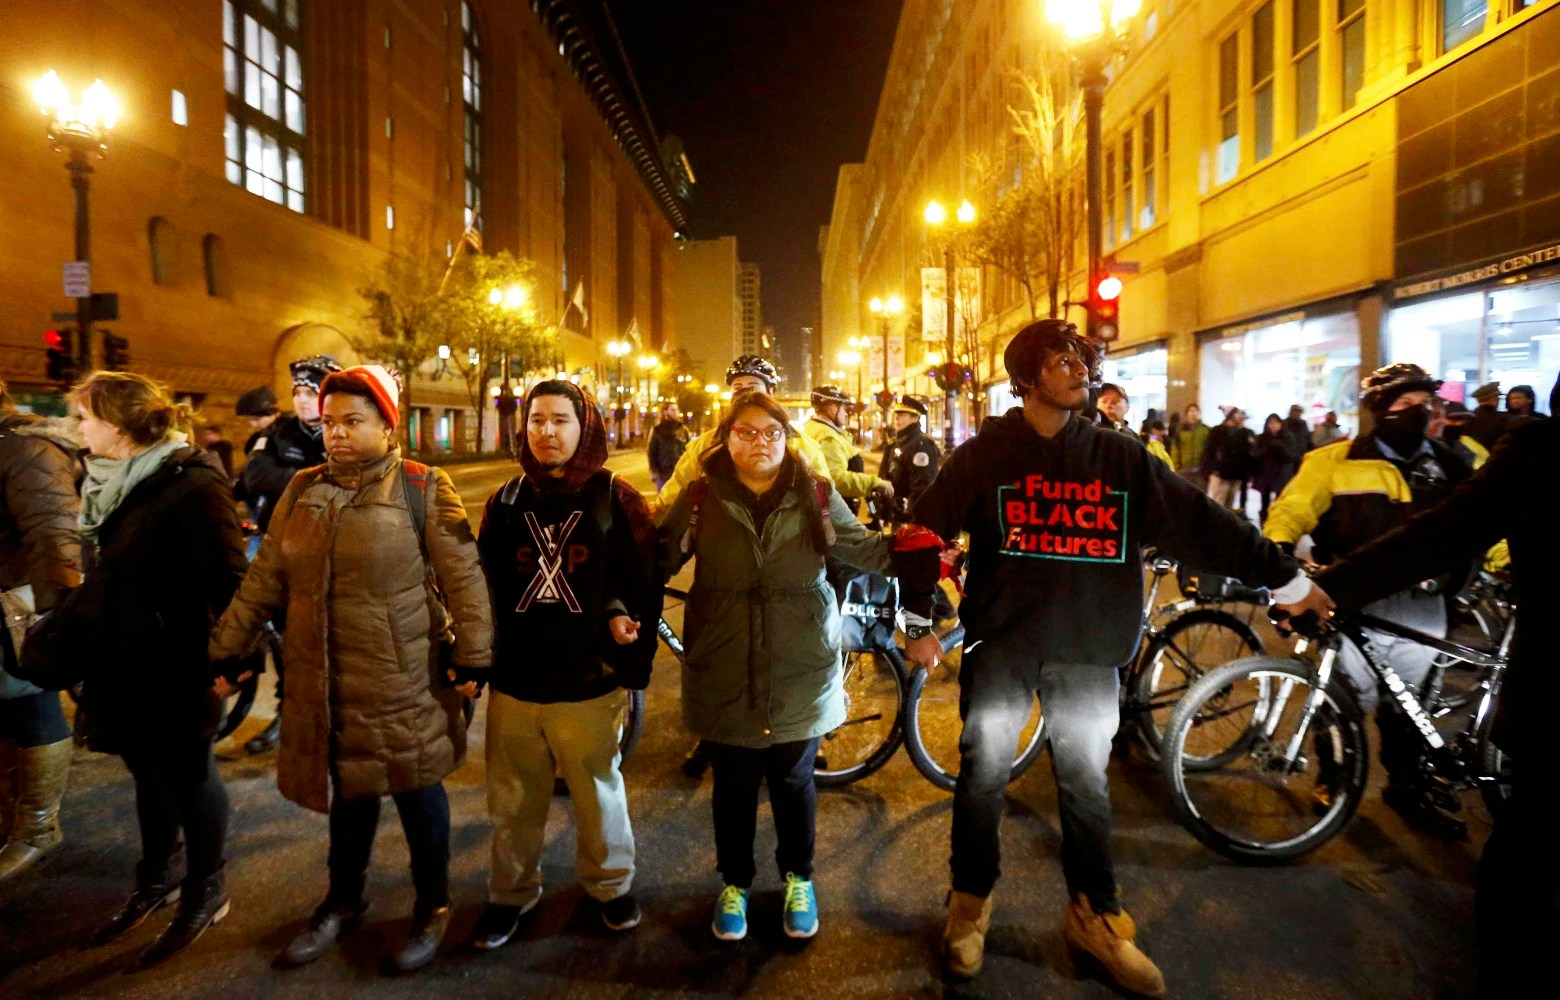 Protesters block streets in Chicago